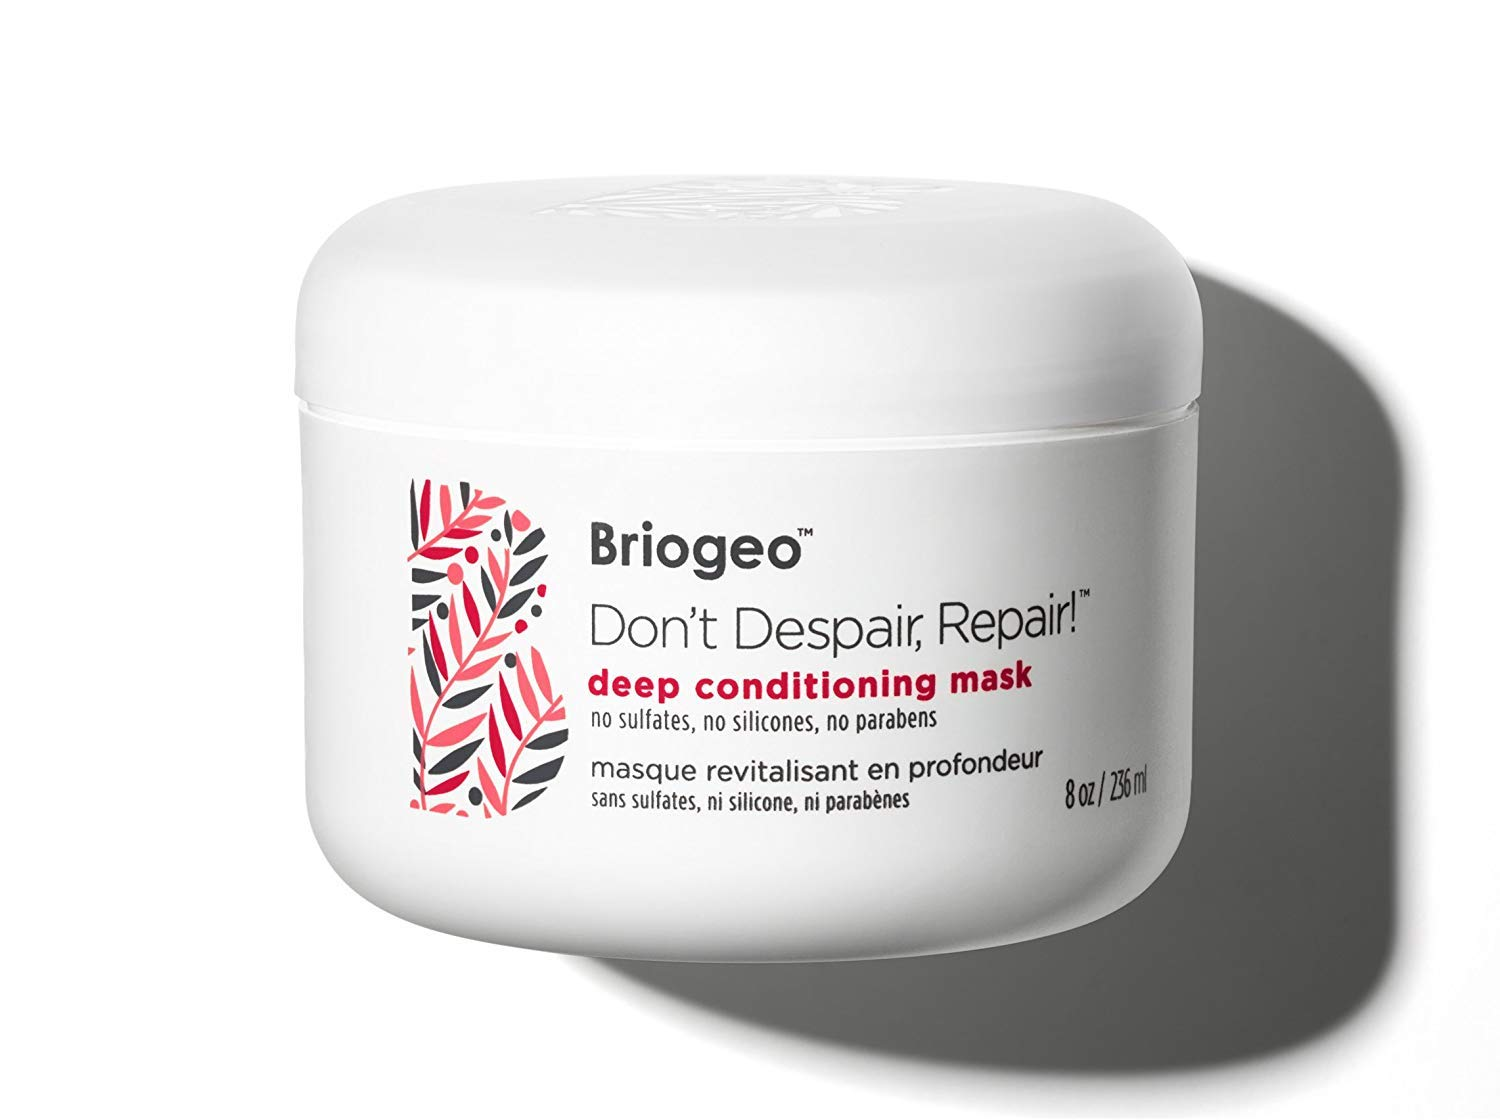 Briogeo - Don't Despair, Repair! Deep Conditioning Mask, Intense Hydration for Those with Dry, Damaged, Chemically Treated and/or Lifeless Hair, 8 oz (2 pack)